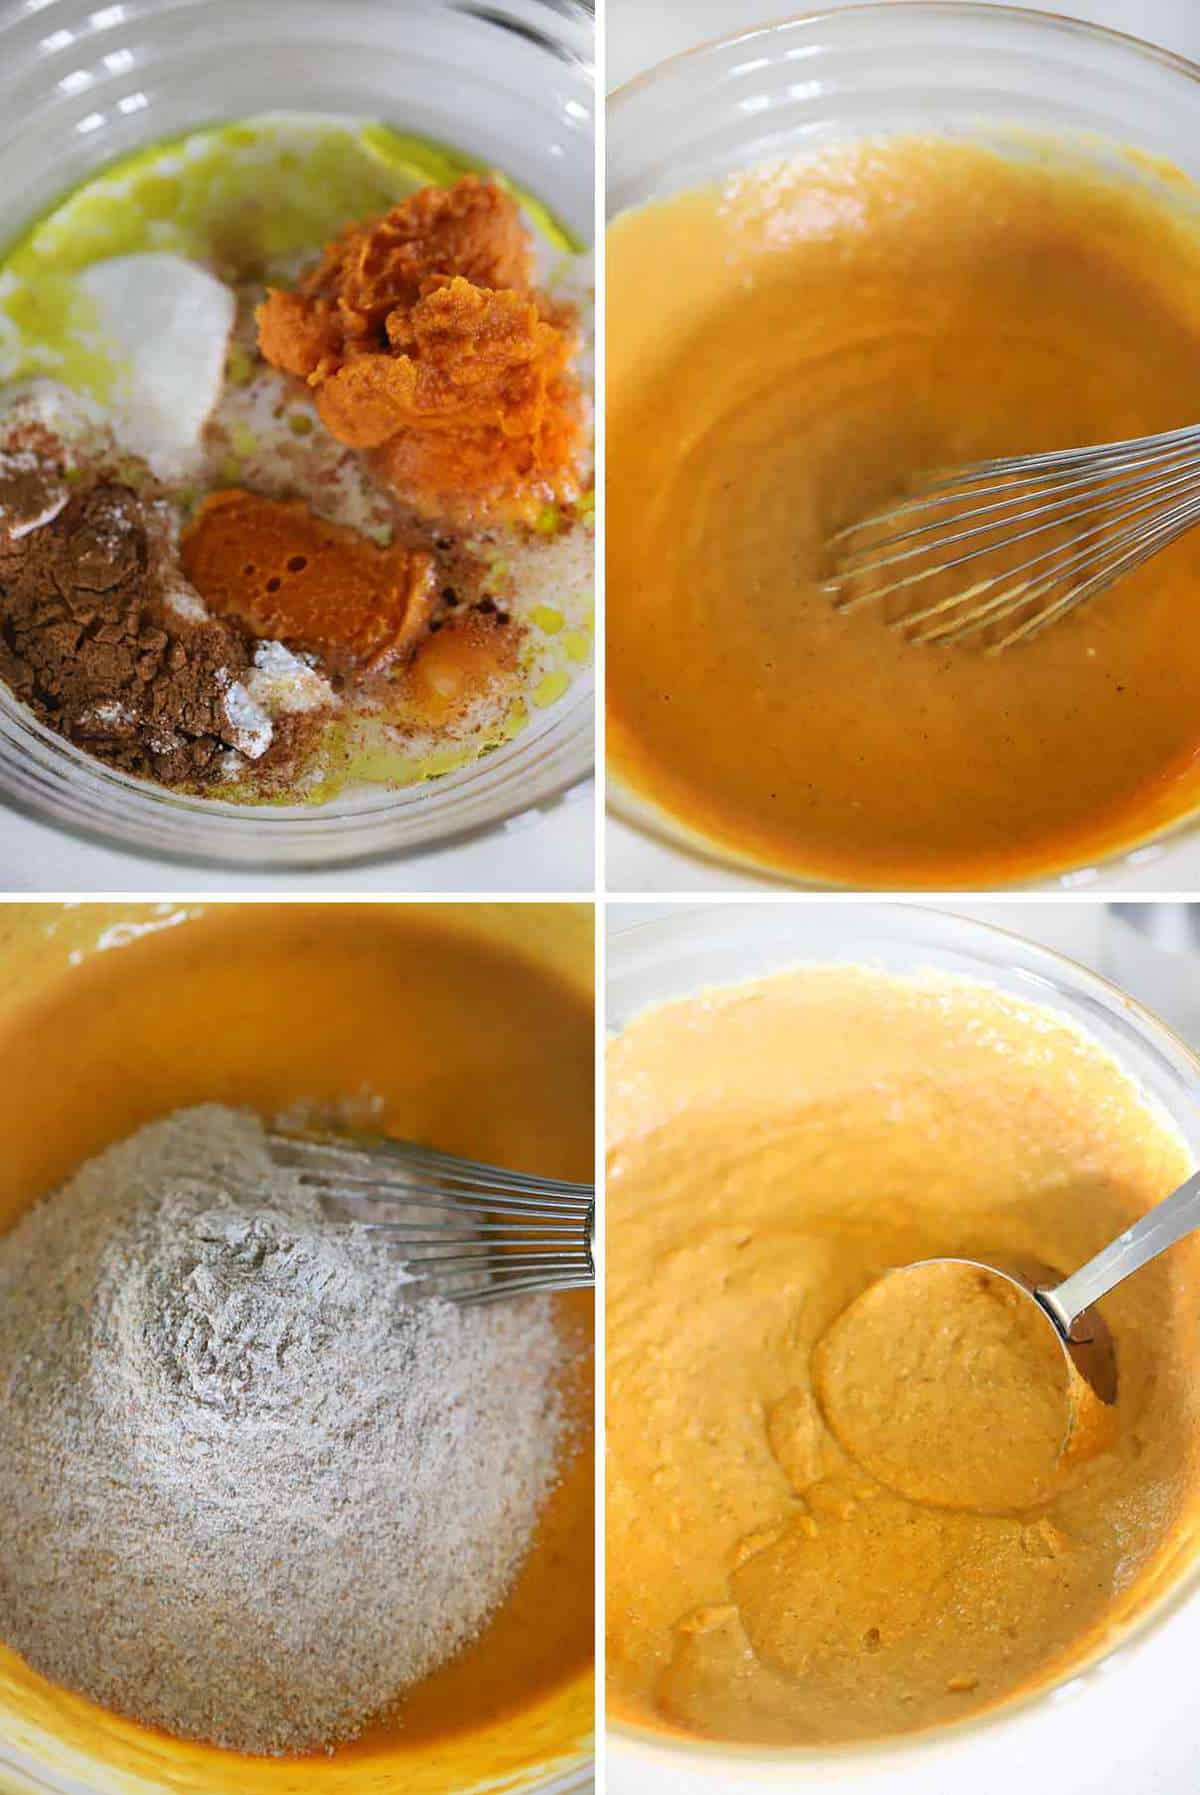 Mixing the batter for healthy pumpkin pancakes with whole wheat flour.